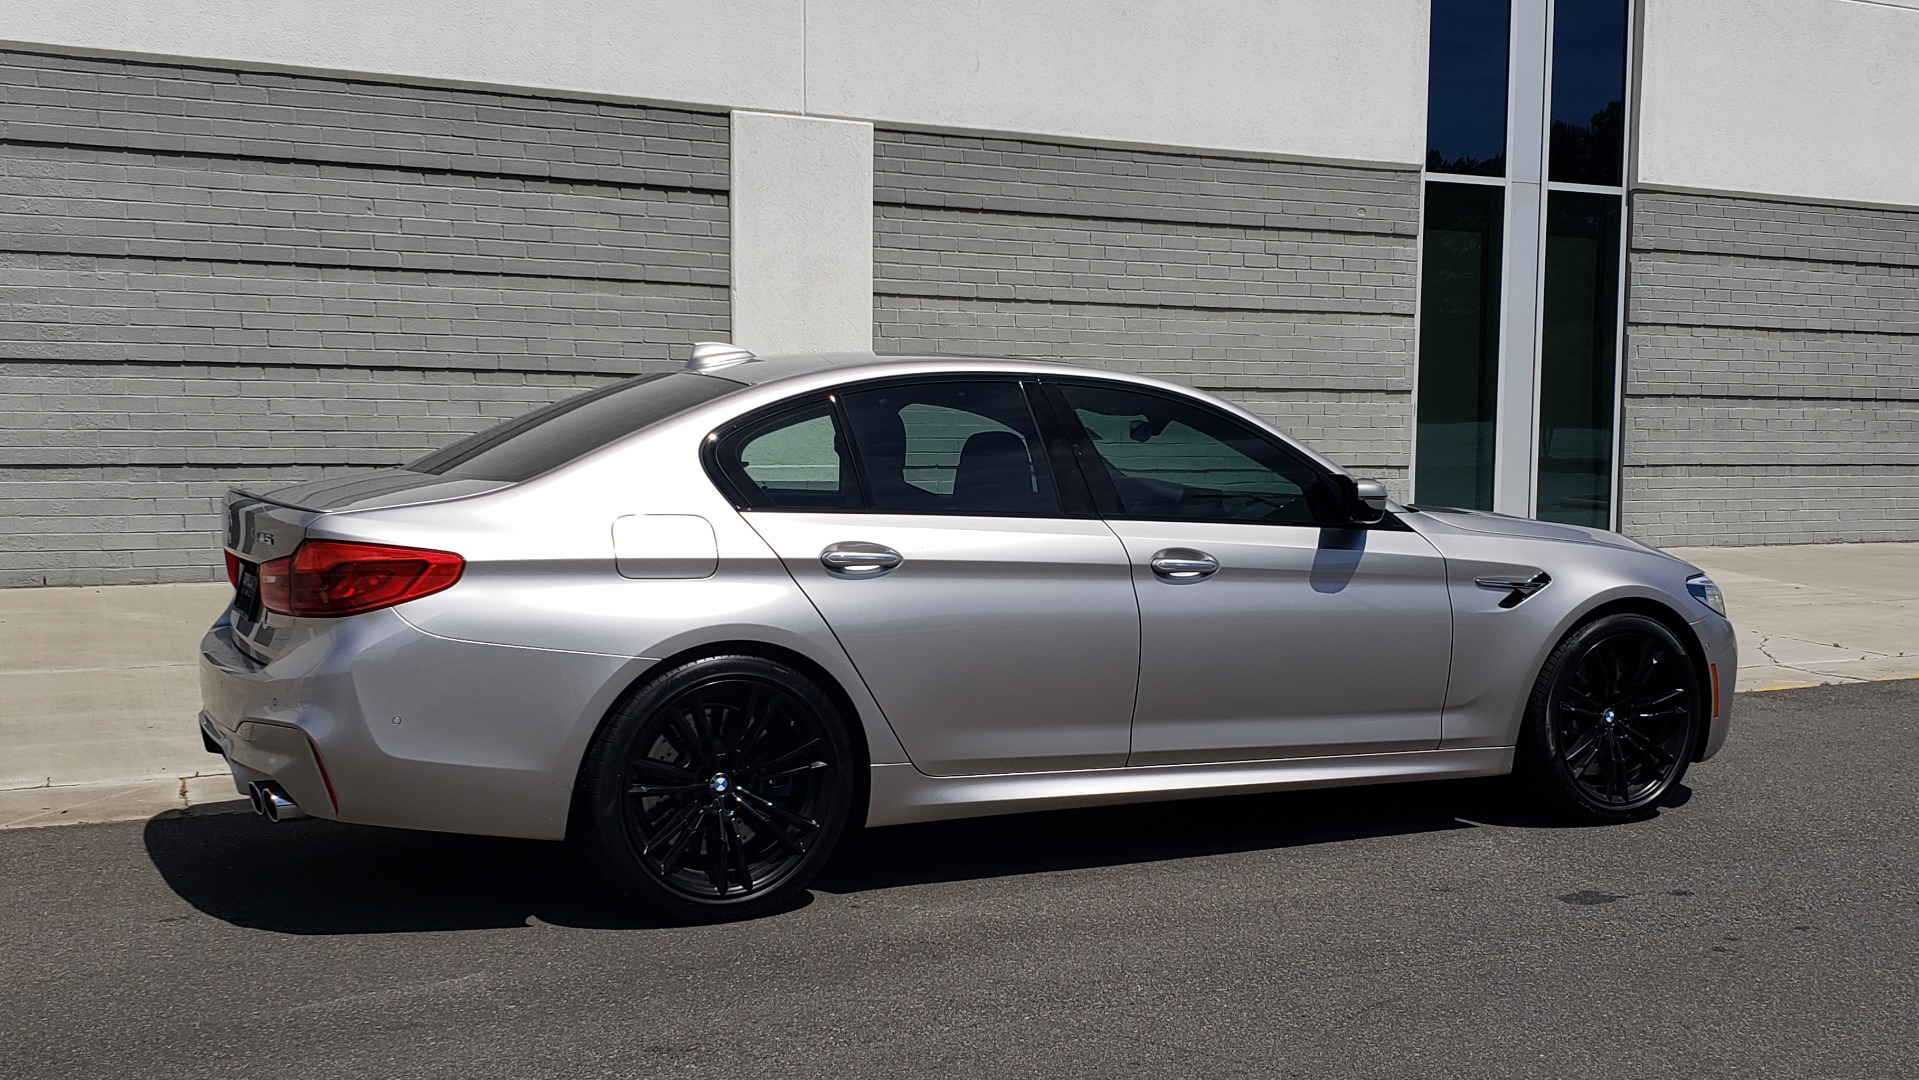 Used 2018 BMW M5 SEDAN / EXEC PKG / DRVR ASST PLUS / MOONROOF / B&W SND for sale $81,495 at Formula Imports in Charlotte NC 28227 9